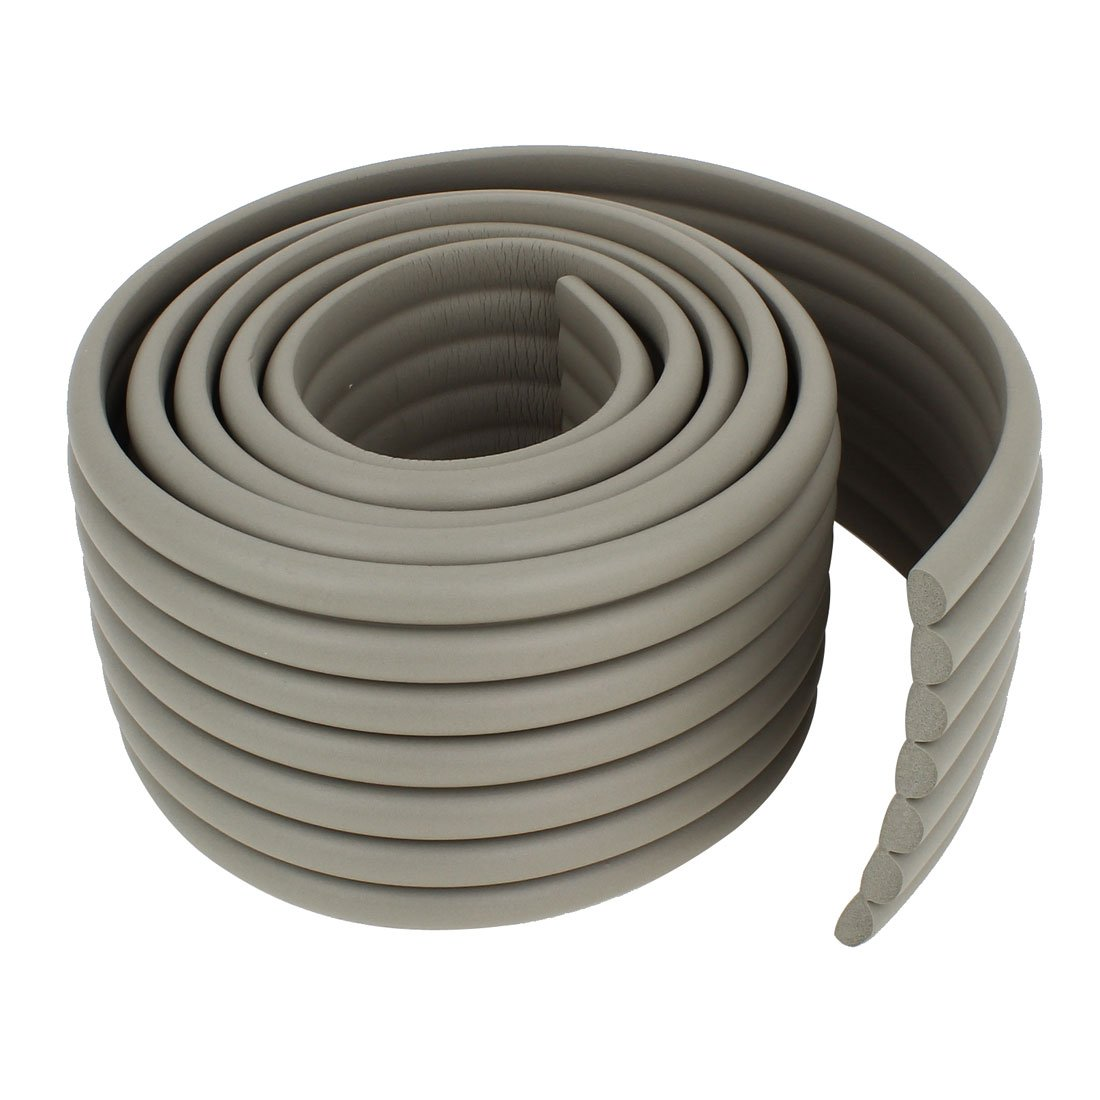 Gray Soft Flexible Foam Table Protector Edge Guard Strip 2M Long uxcell a14080600ux0177